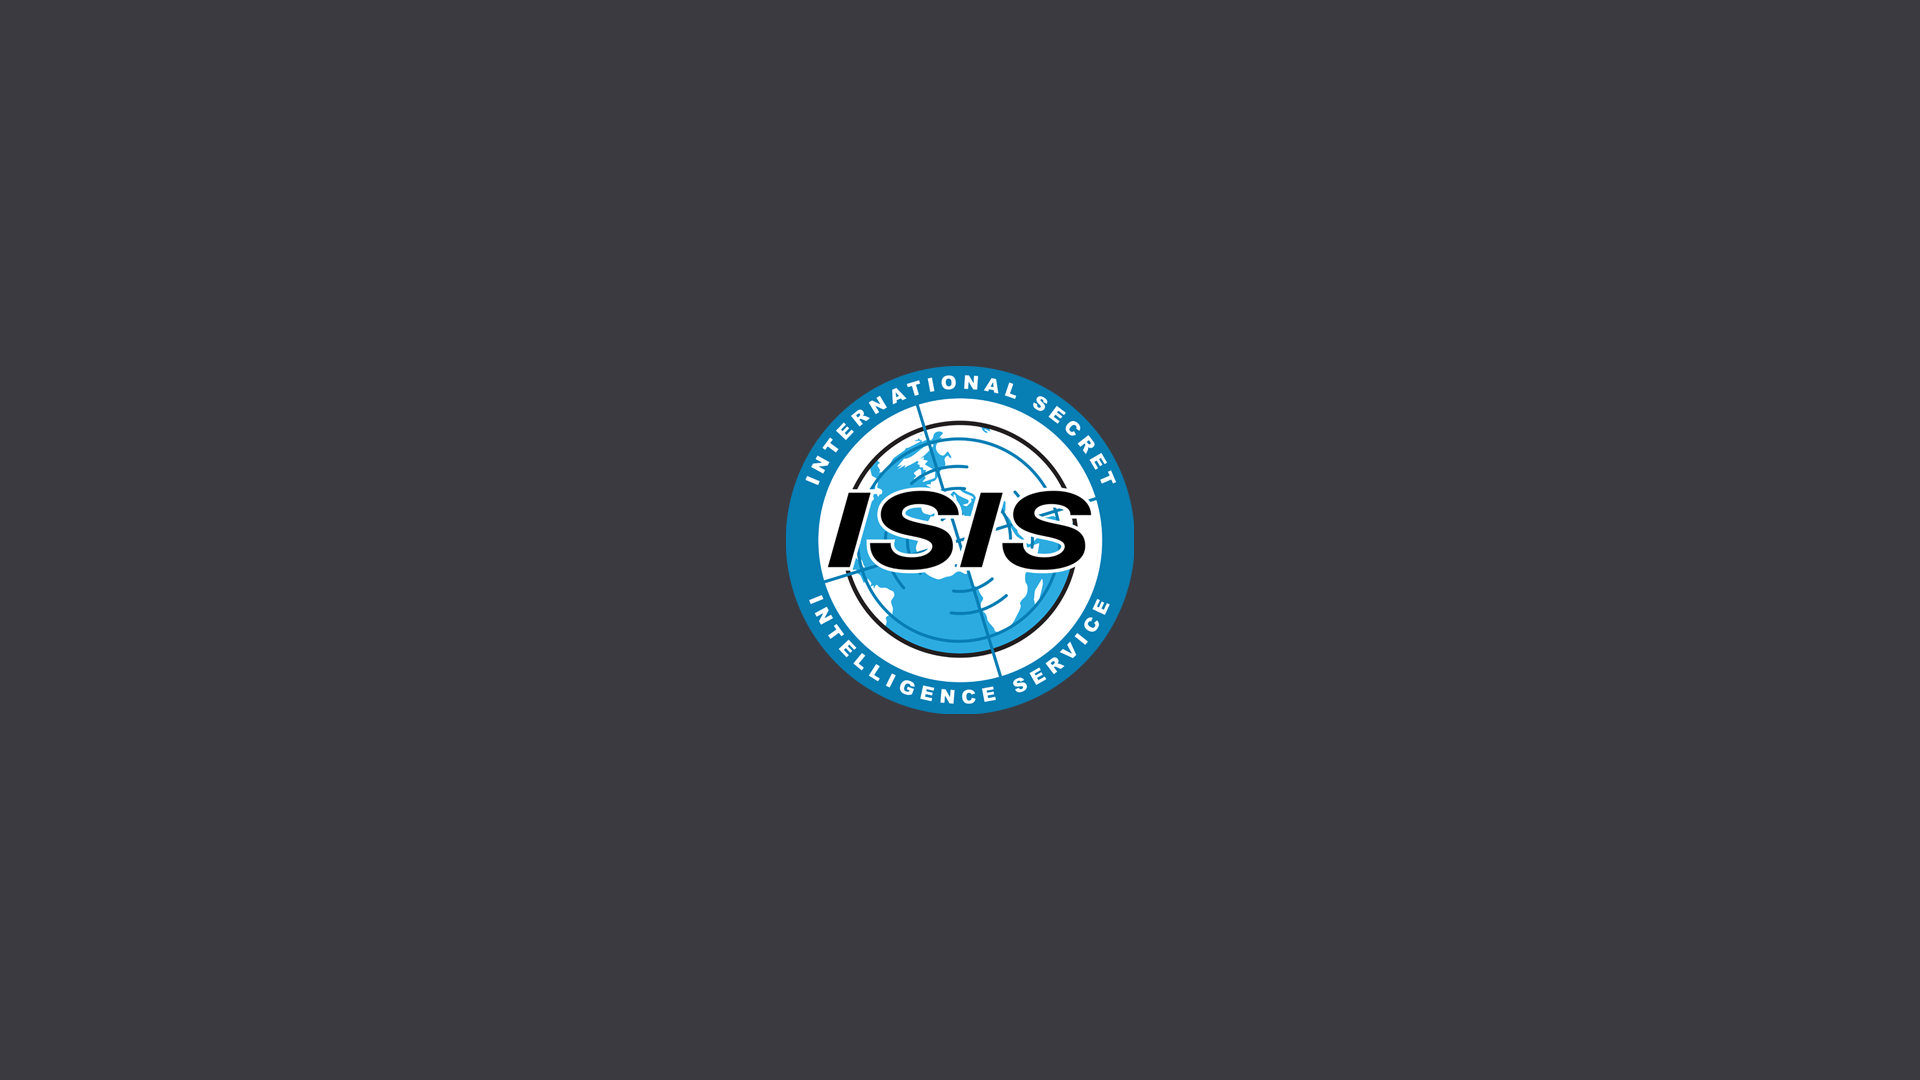 Isis Wallpapers, 1920x1080 px | Wallpapers PC Gallery